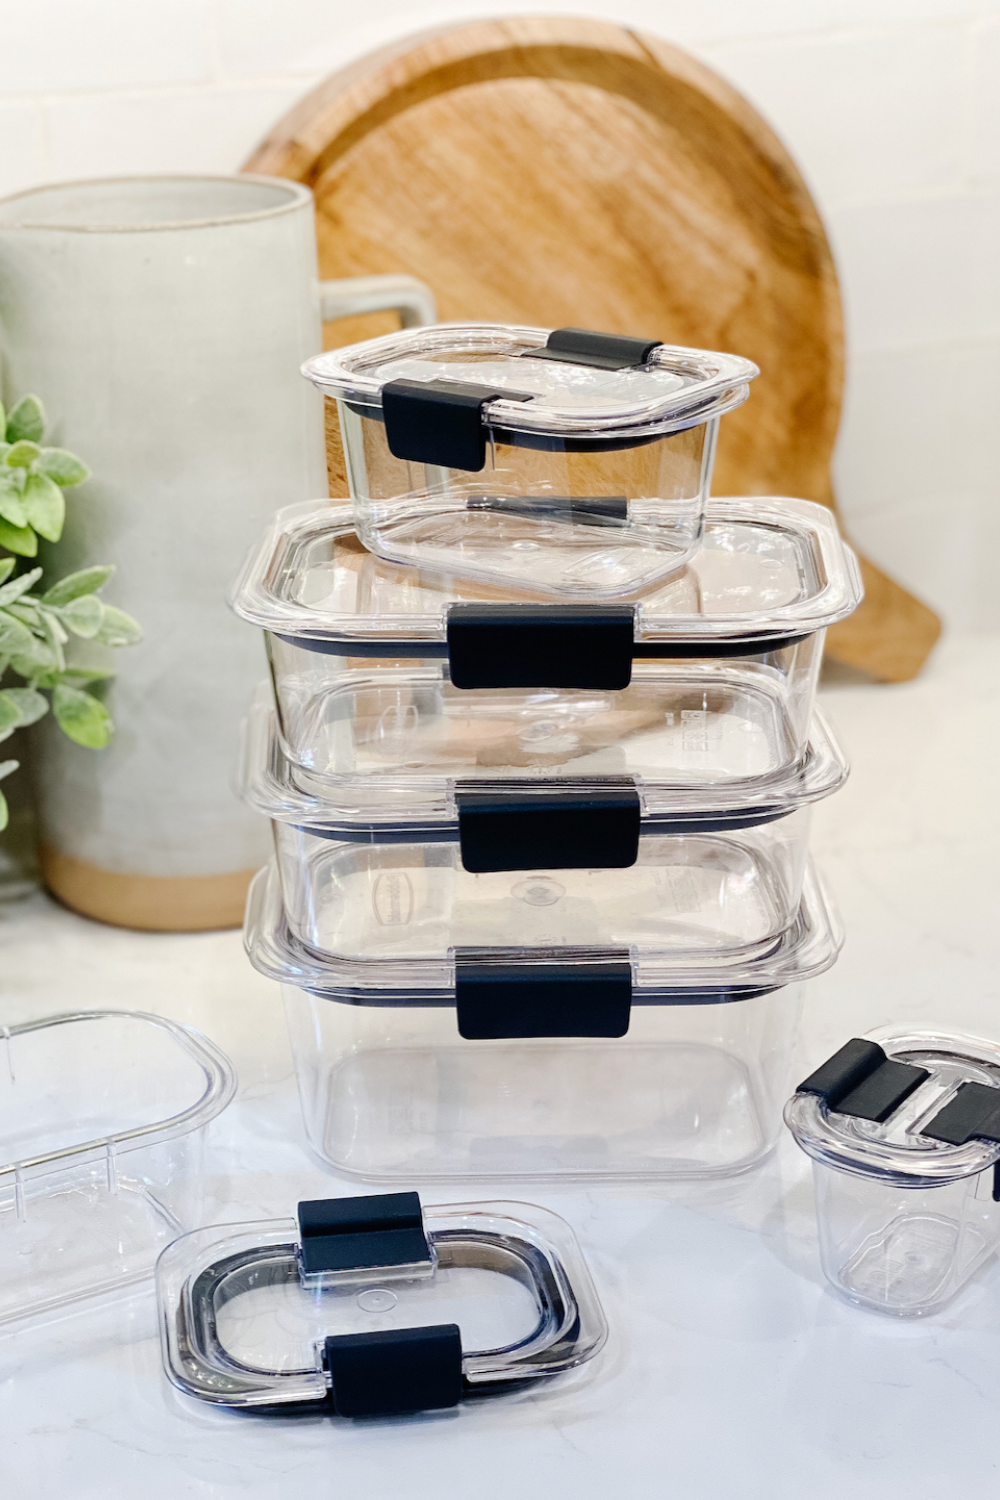 My Favorite Kitchen Food Storage Containers